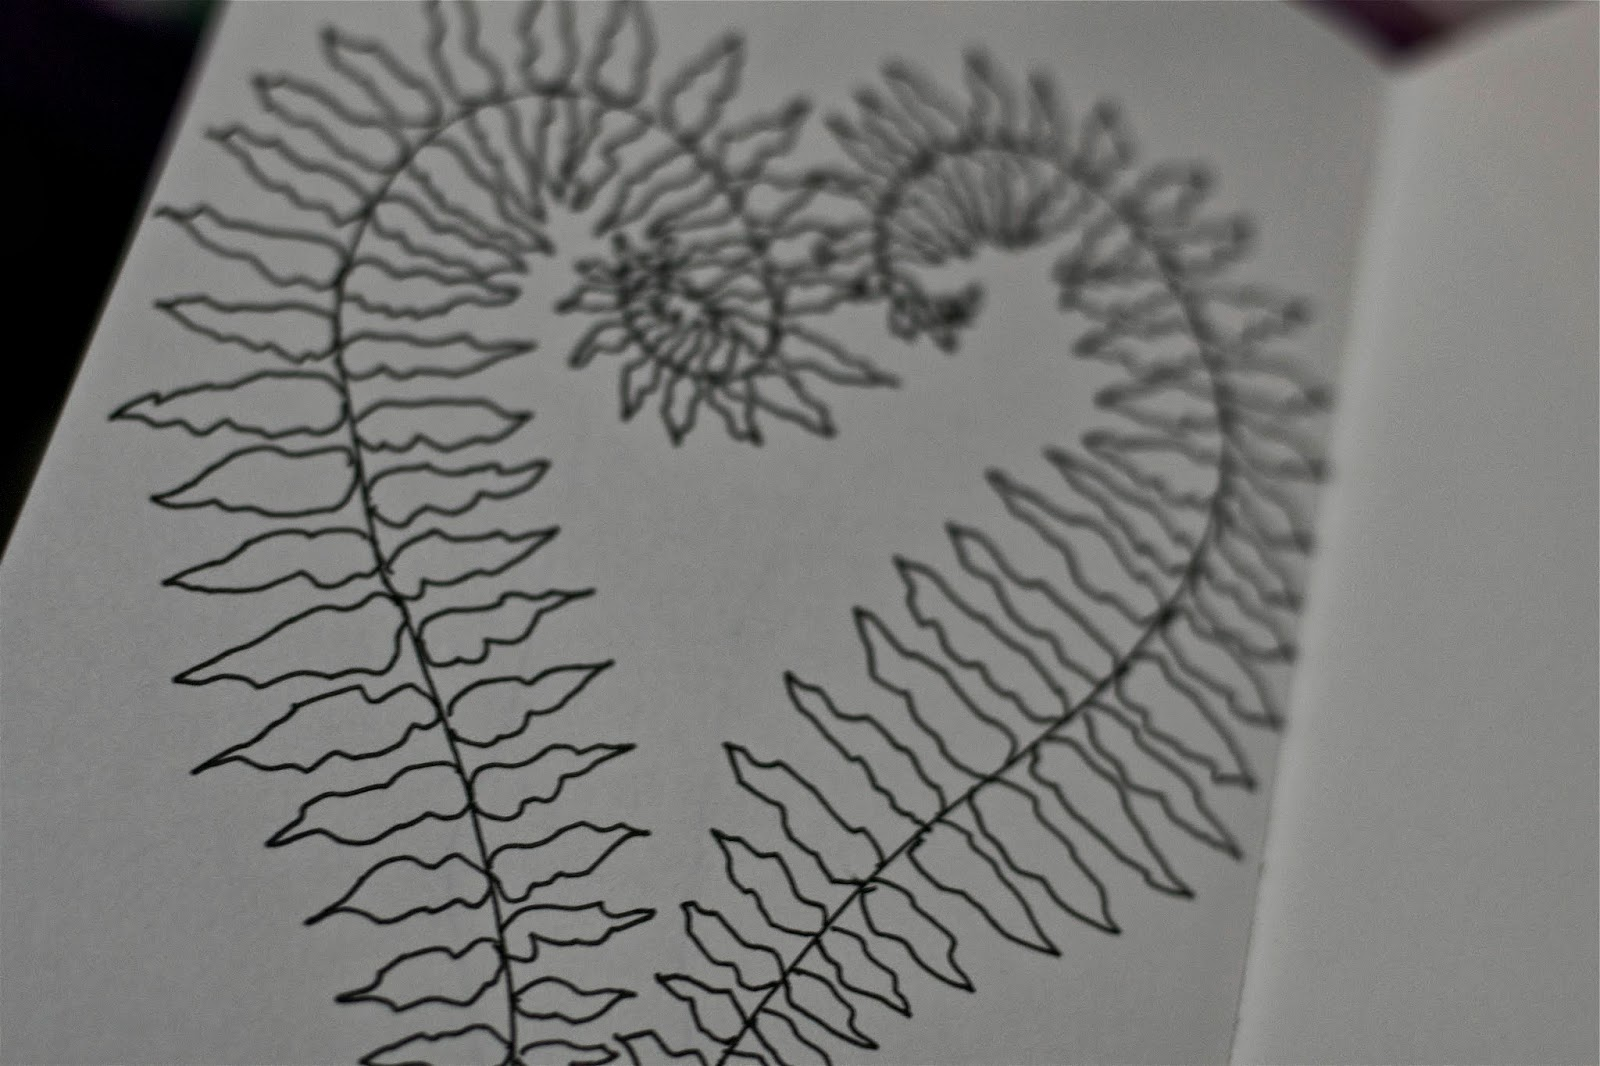 Rainy days are for sketching ferns and thinking of new designs.